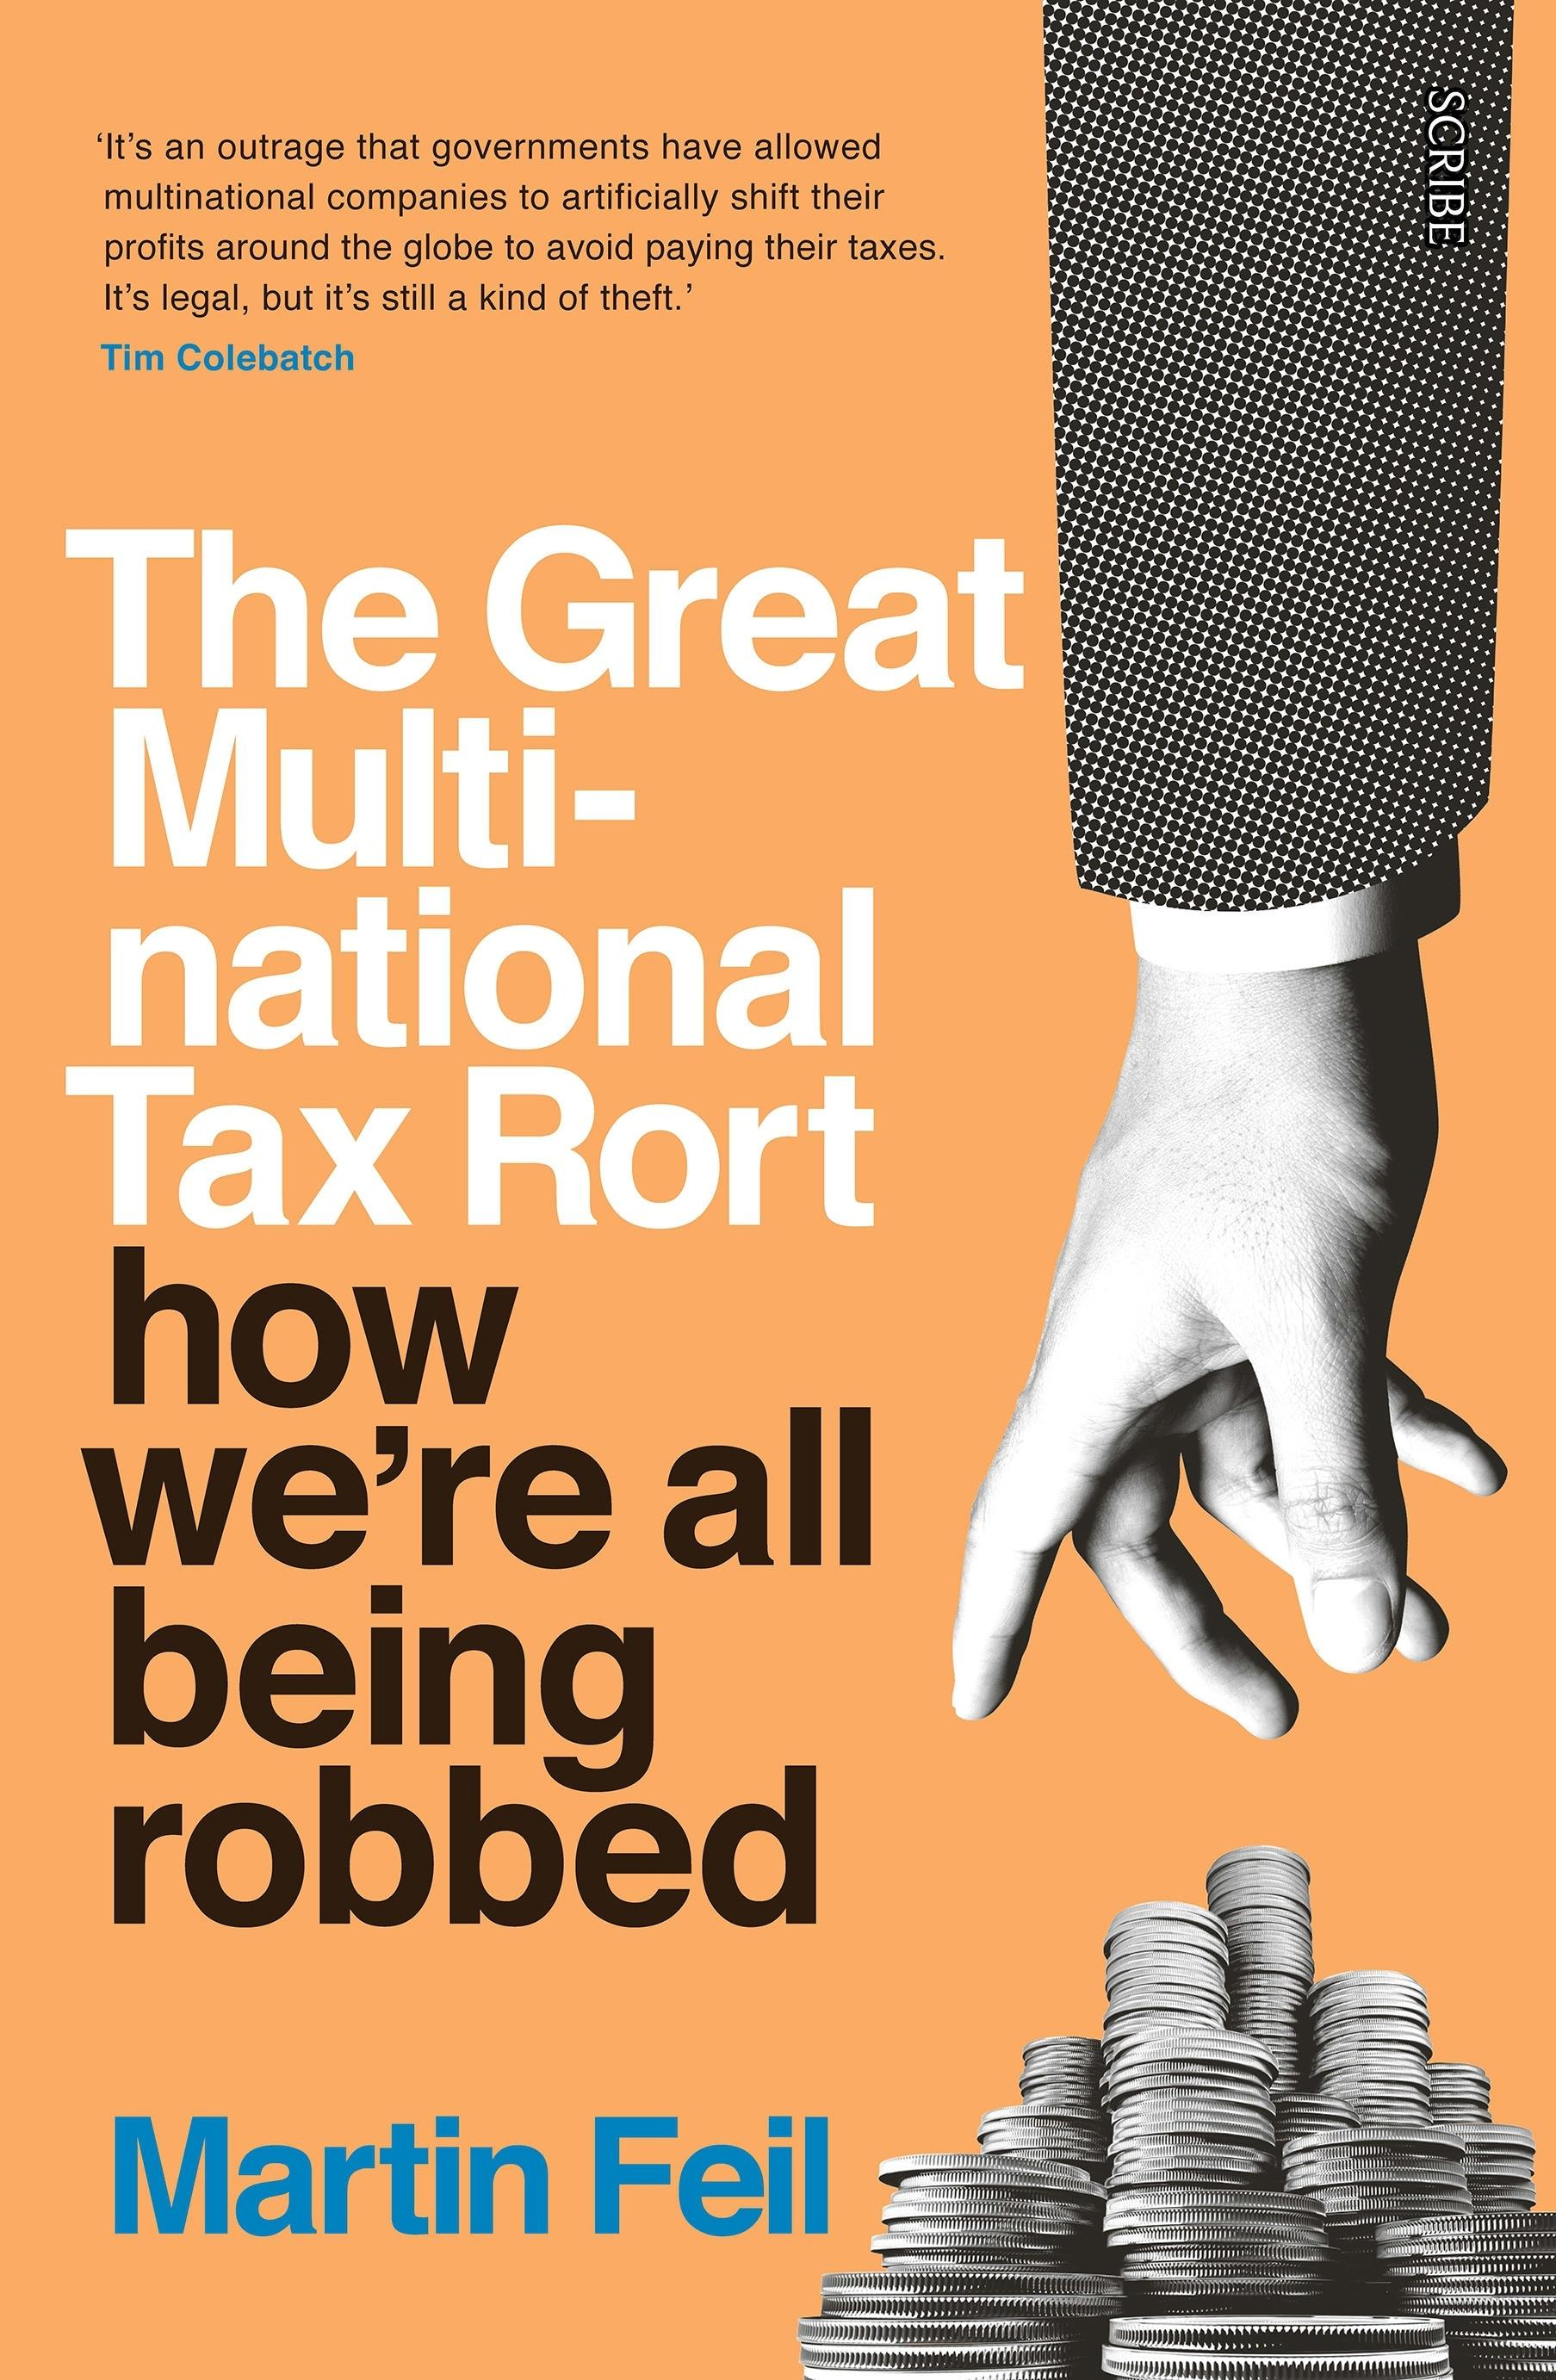 The Great Multinational Tax Rort: how we're all being robbed: how we're all being robbed